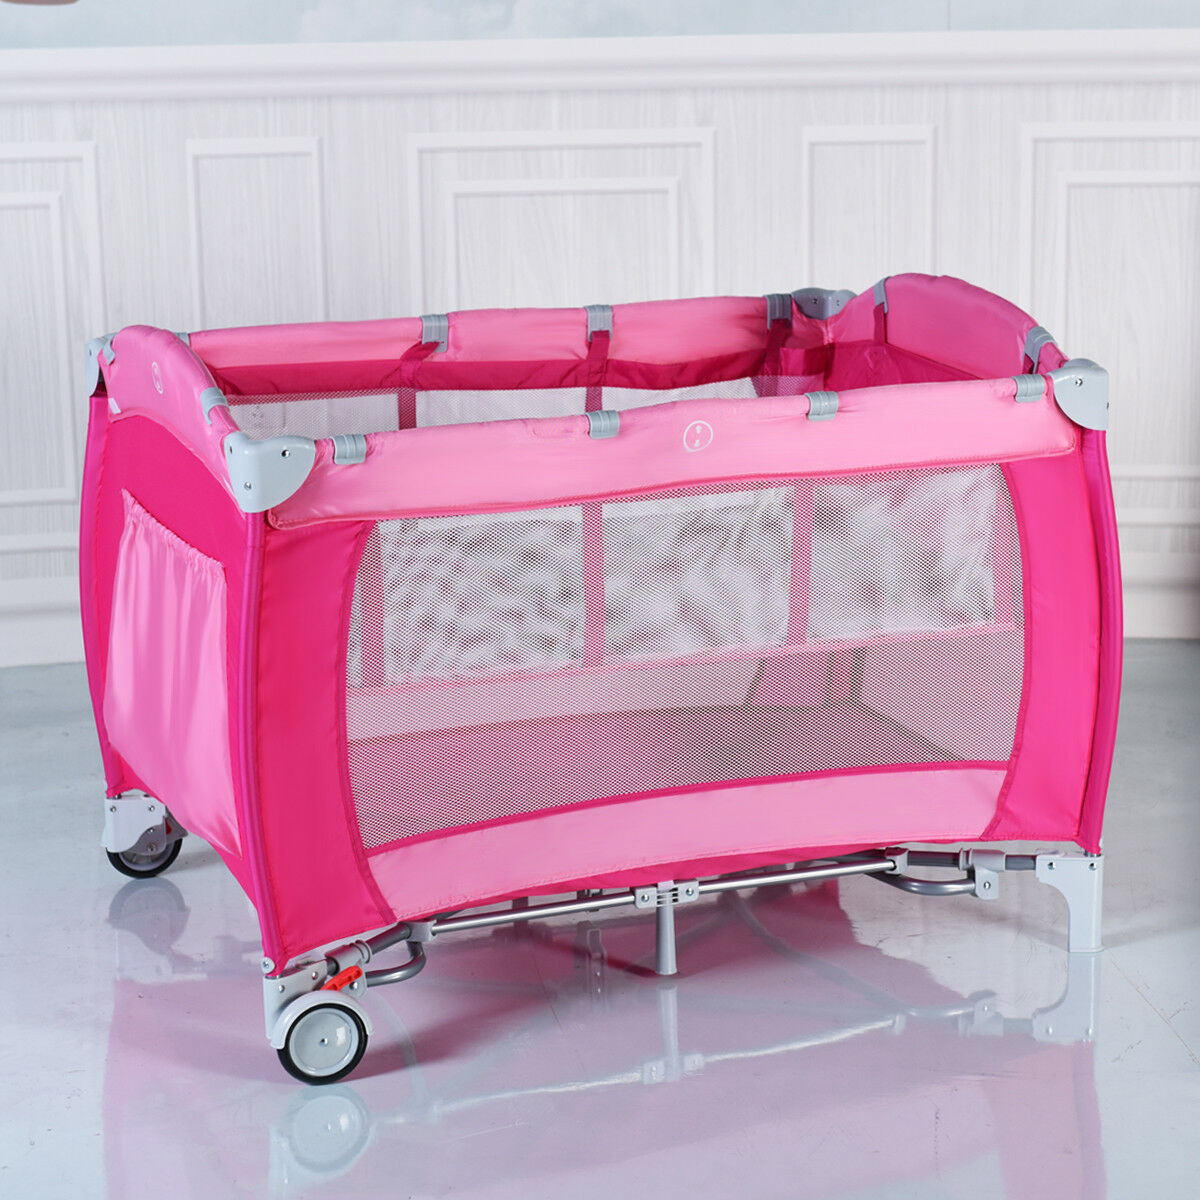 Foldable Baby Crib Playpen Travel Infant Bassinet Bed Mosquito Net W/ Bag